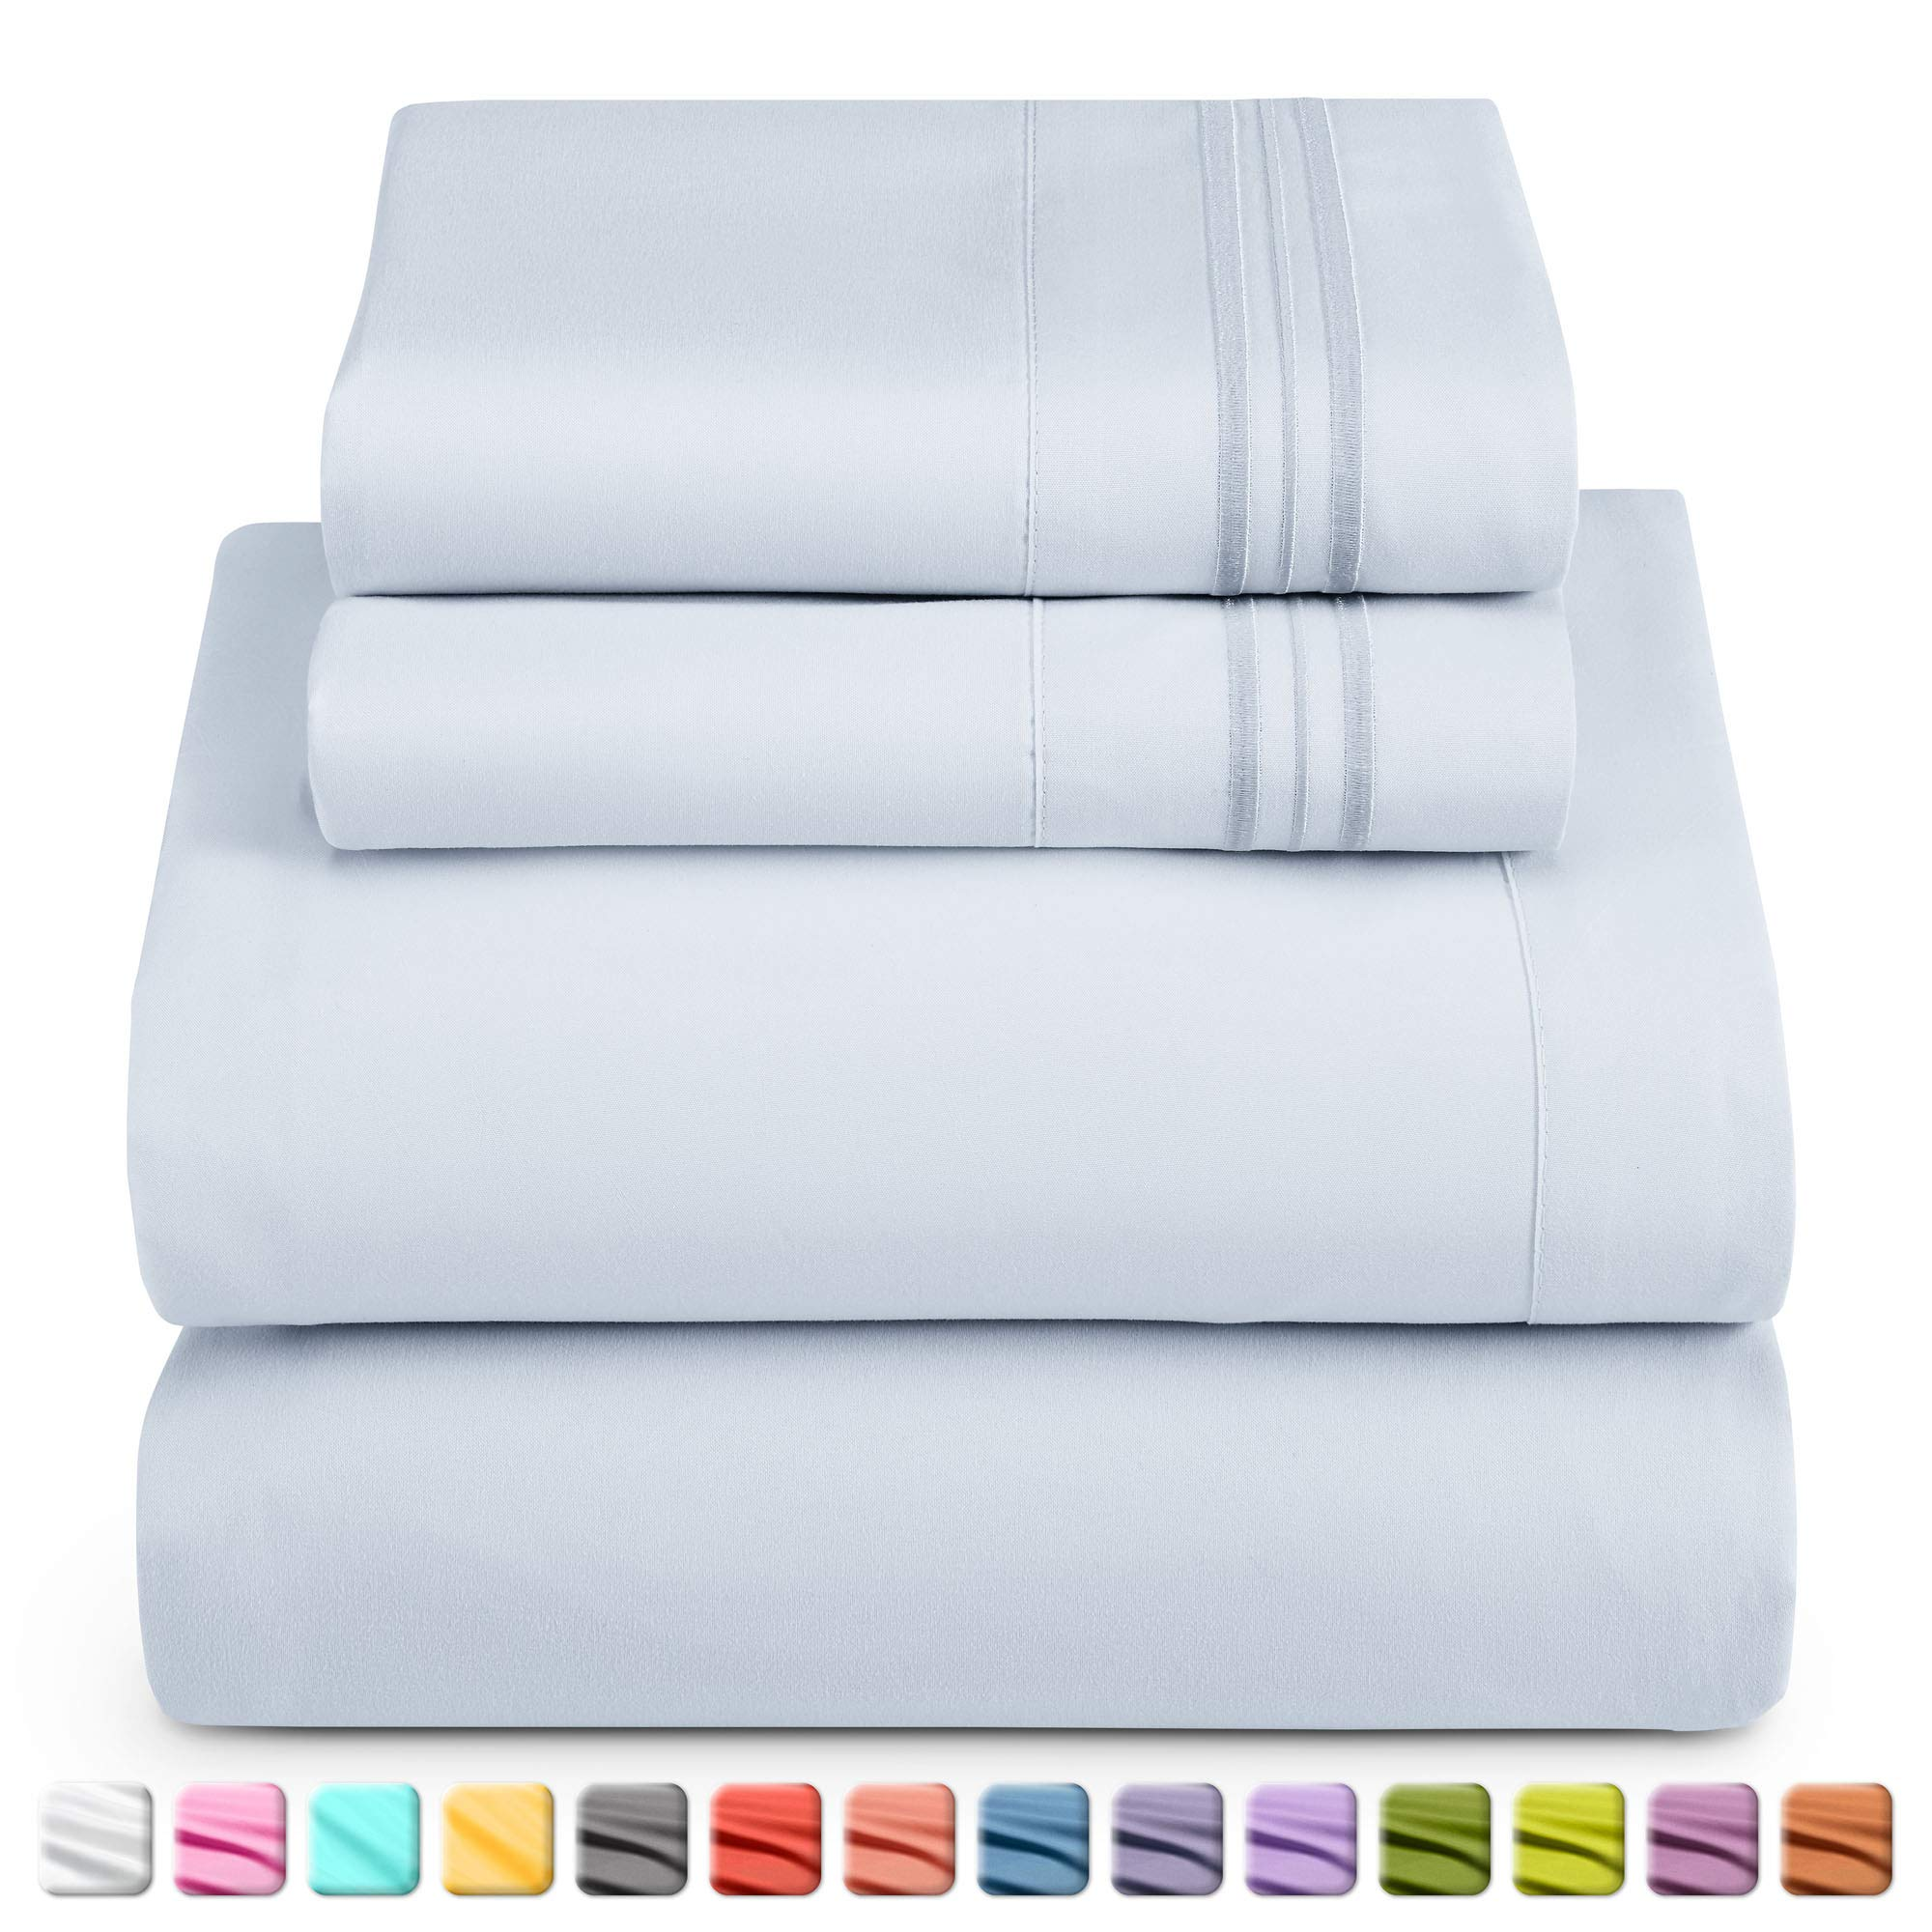 Nestl Deep Pocket Cal King Sheets: 4 Piece Cal King Size Bed Sheets with Fitted Sheet, Flat Sheet, Pillow Cases - Extra Soft Microfiber Bedsheet Set with Deep Pockets for CK Sized Mattress - Ice Blue